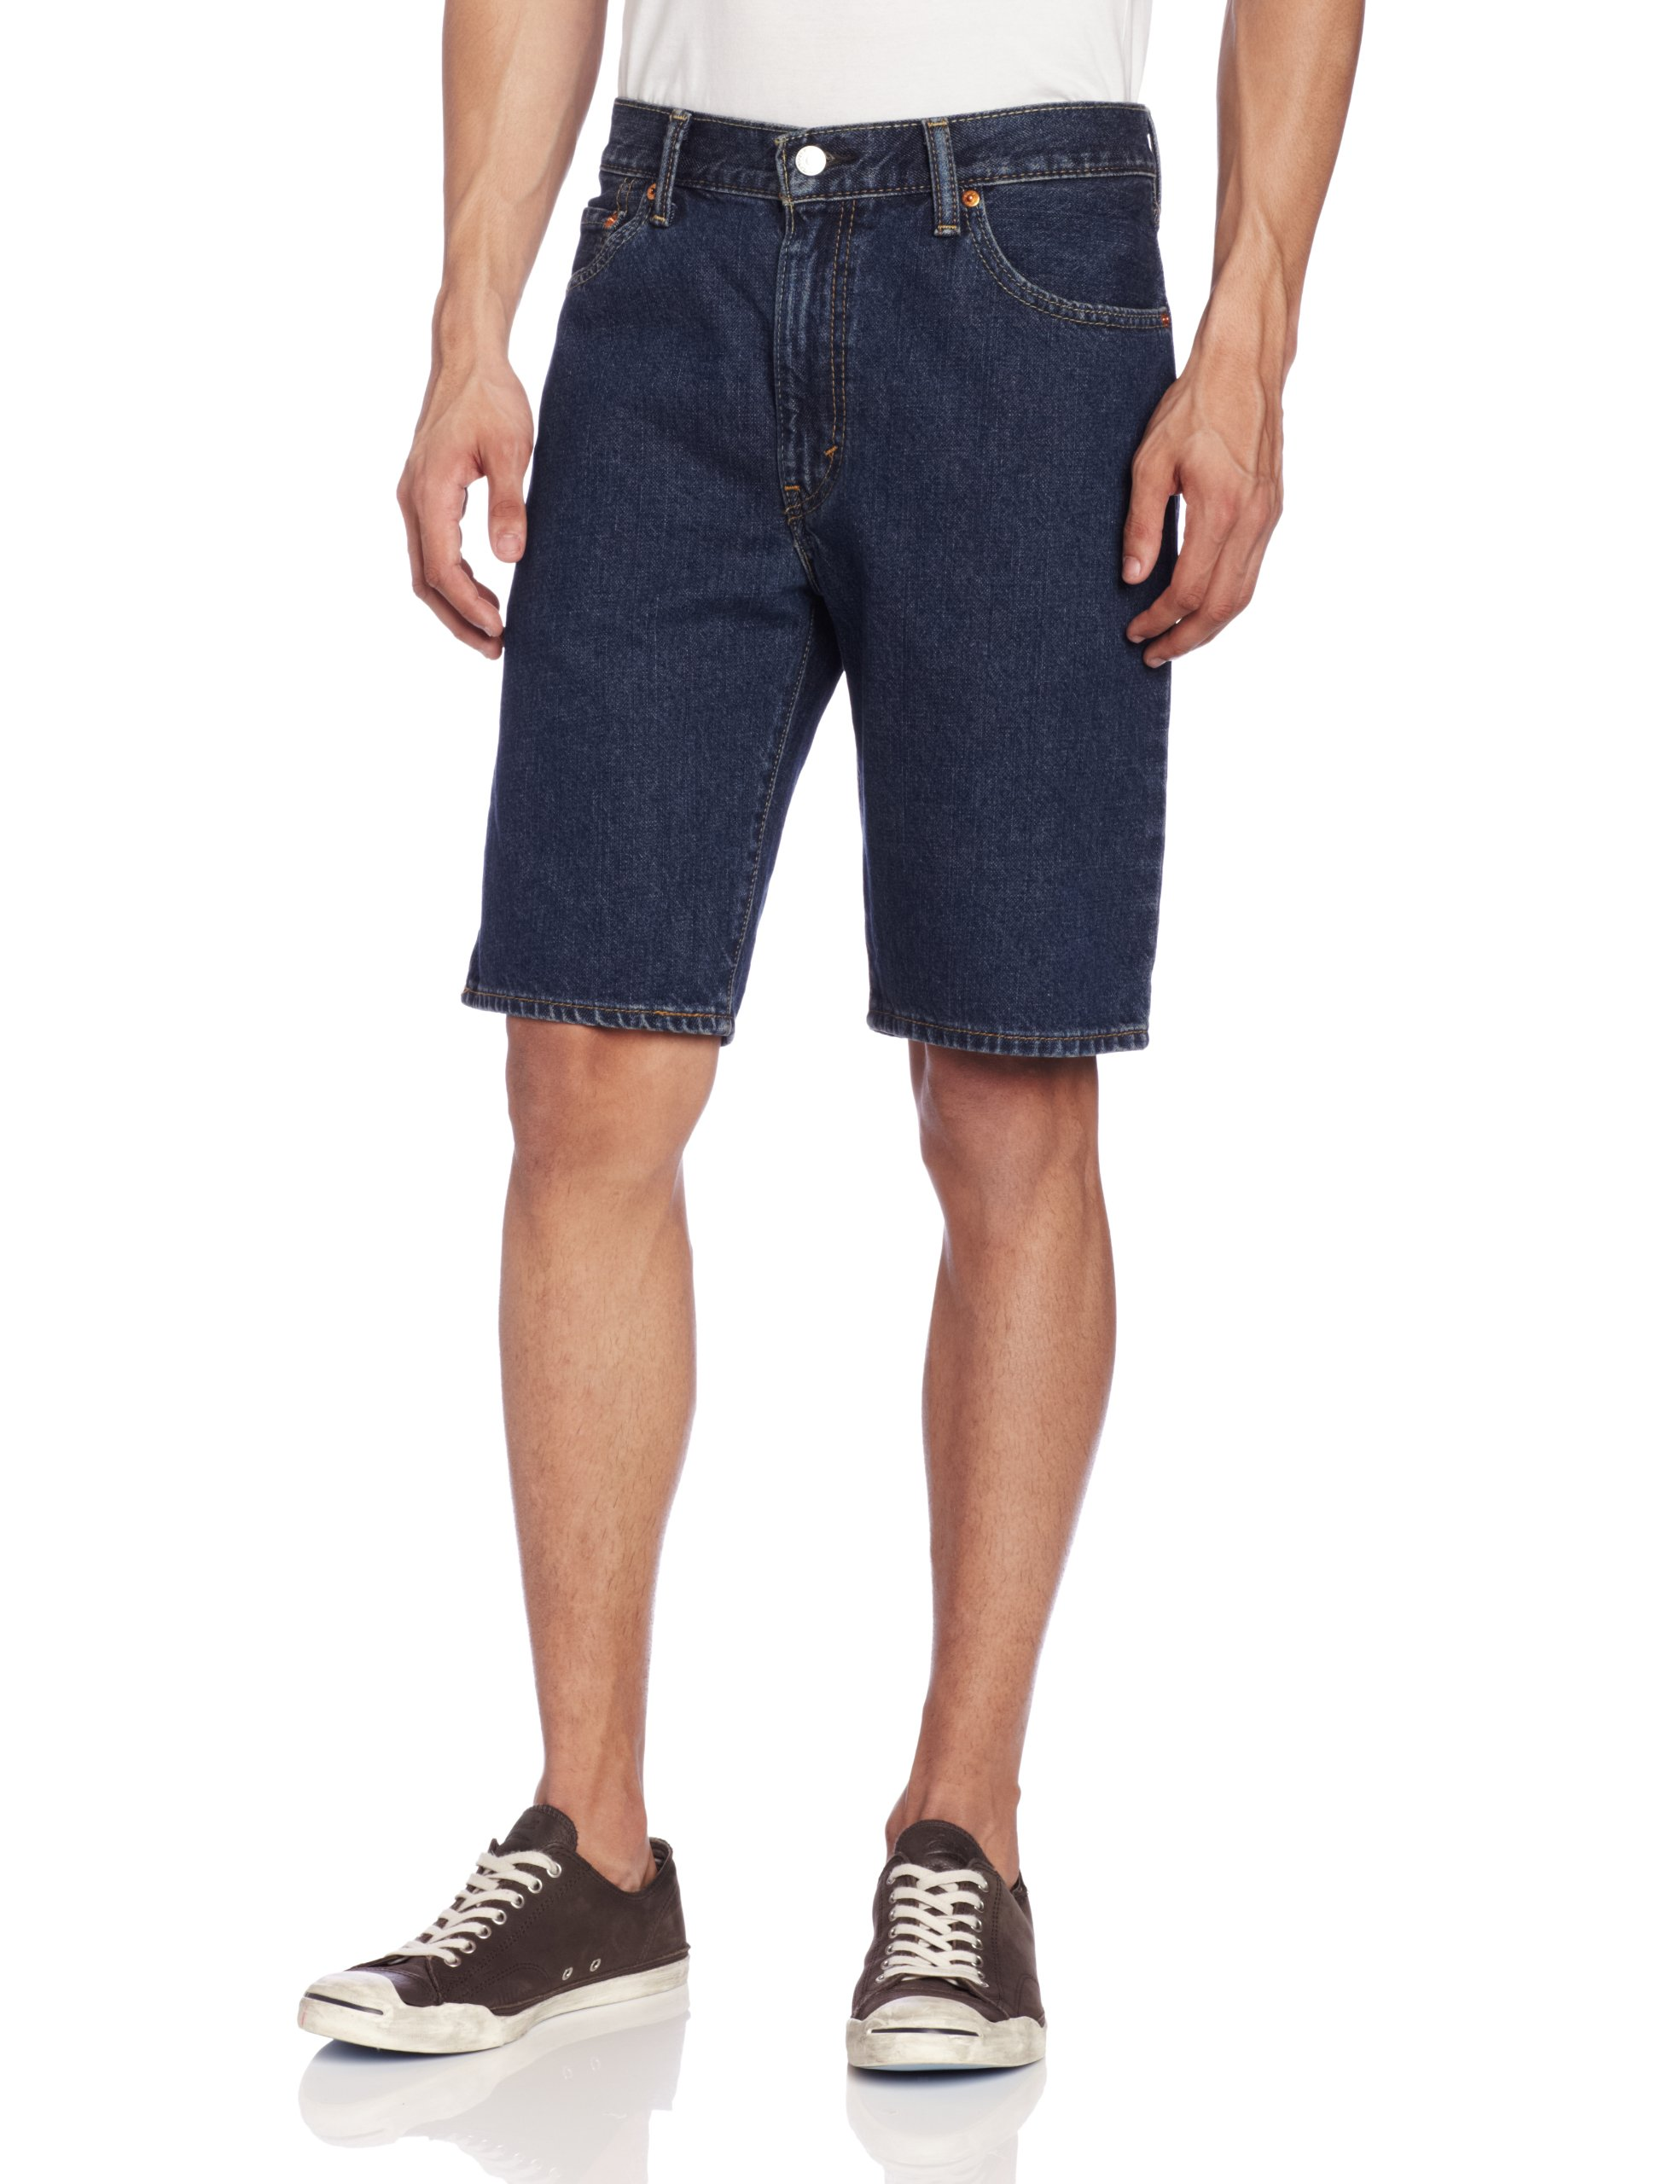 Levi's Men's 505 Regular Fit Short, Dark Stonewash, 34